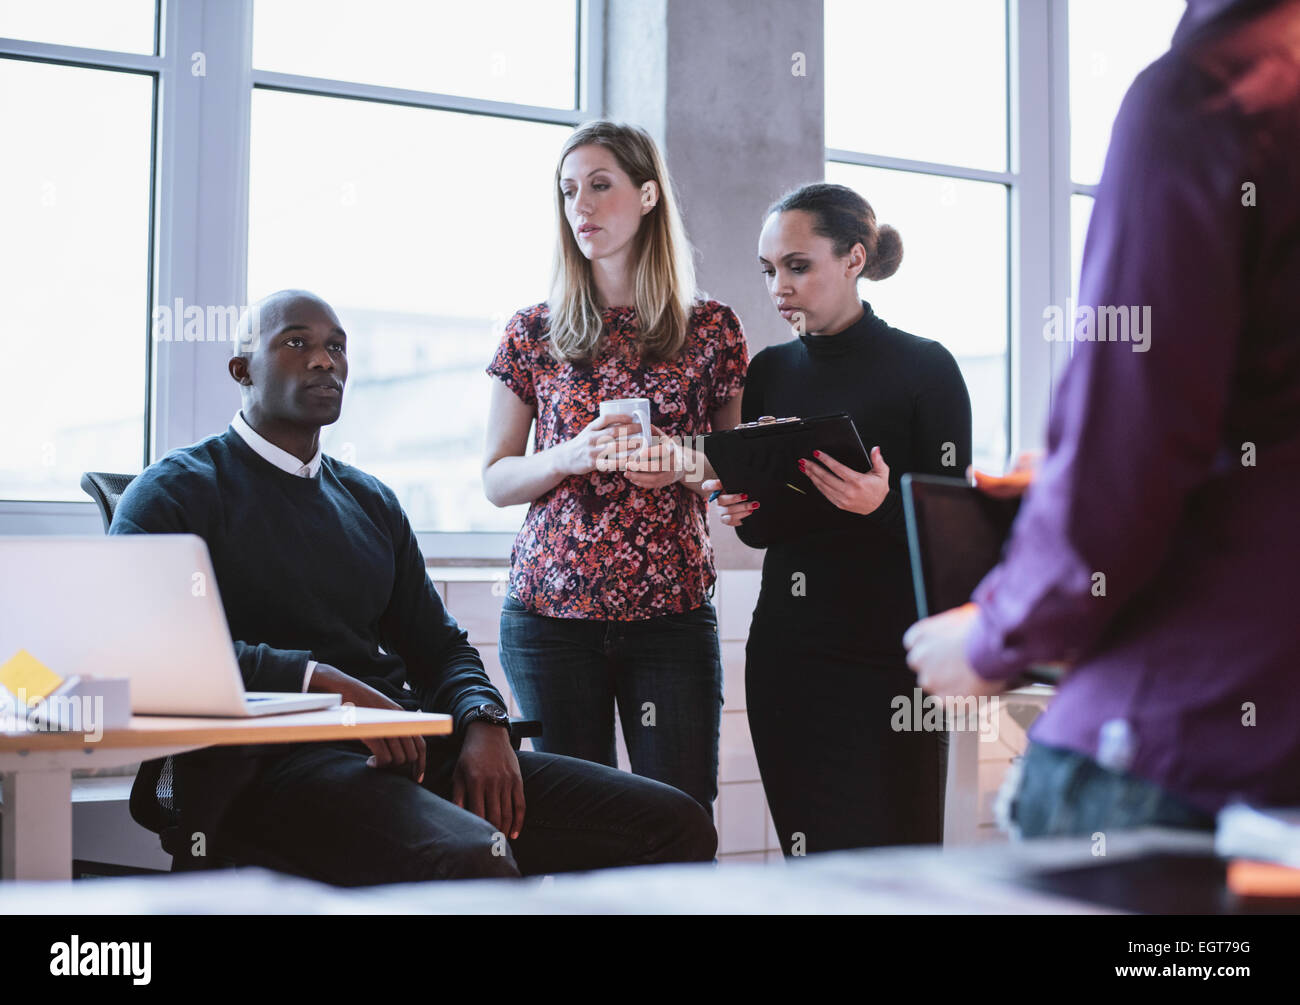 Business people having informal meeting in office. Diverse team of young people discussing work. - Stock Image